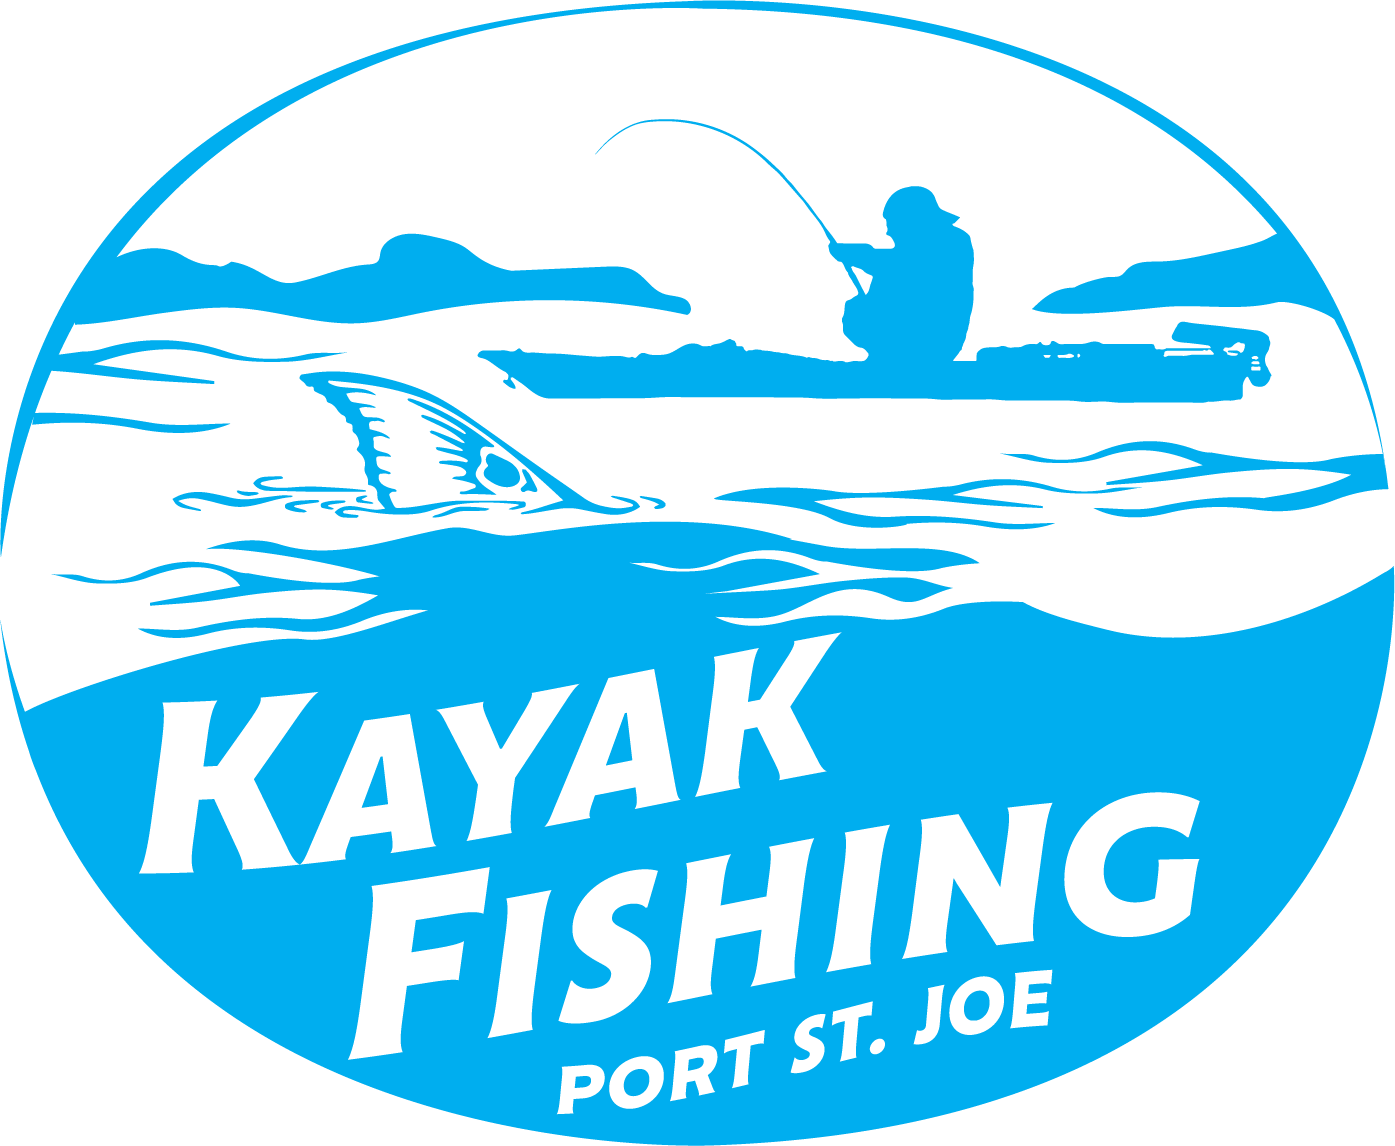 Kayak Fishing Port St. Joe LLC